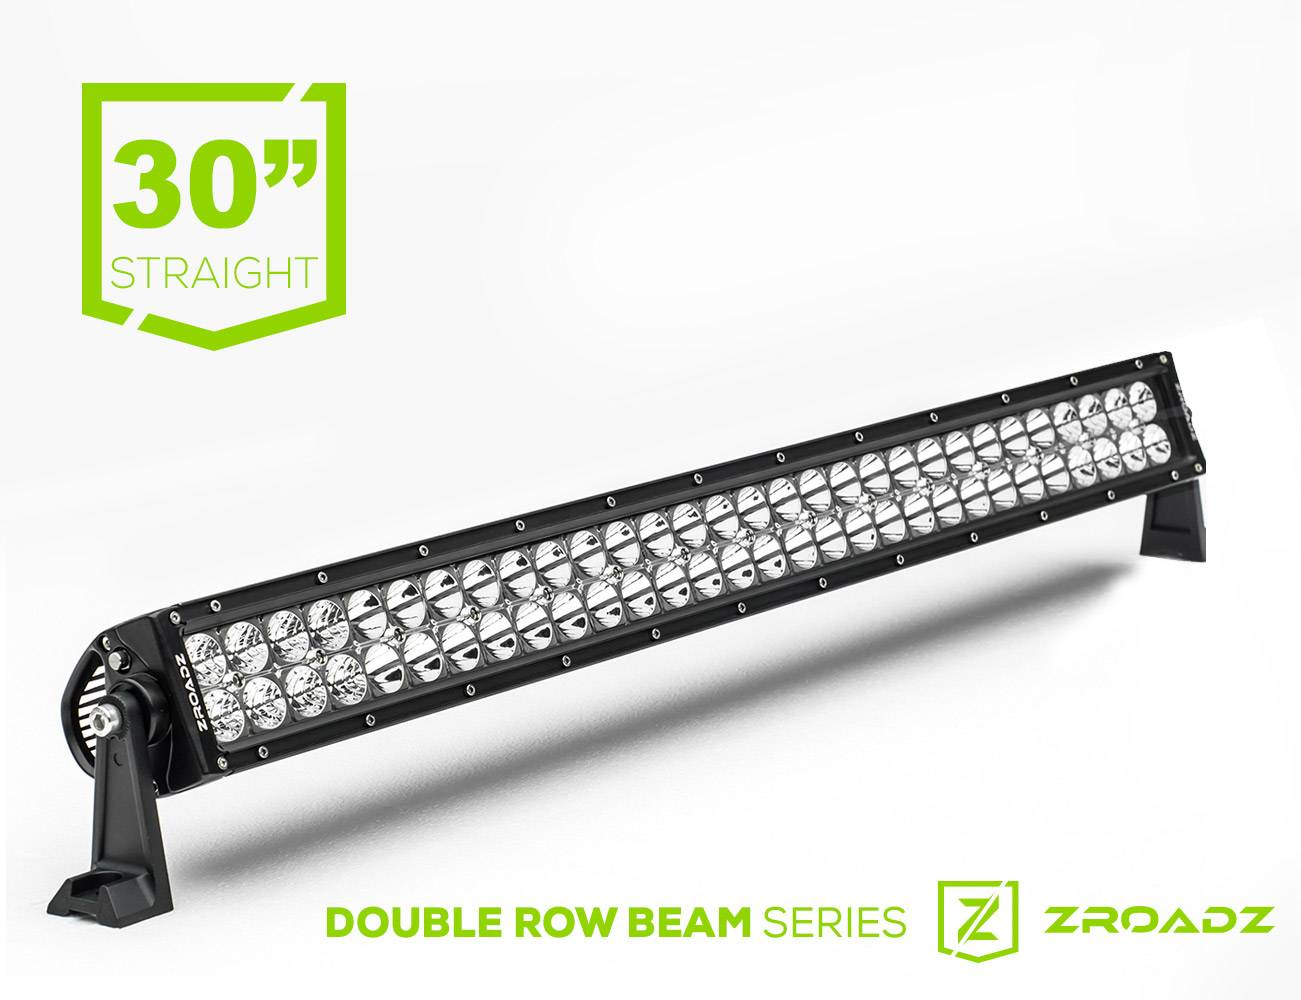 (1) 30 Inch LED Straight Double Row Light Bar - PN #Z30BC14W180